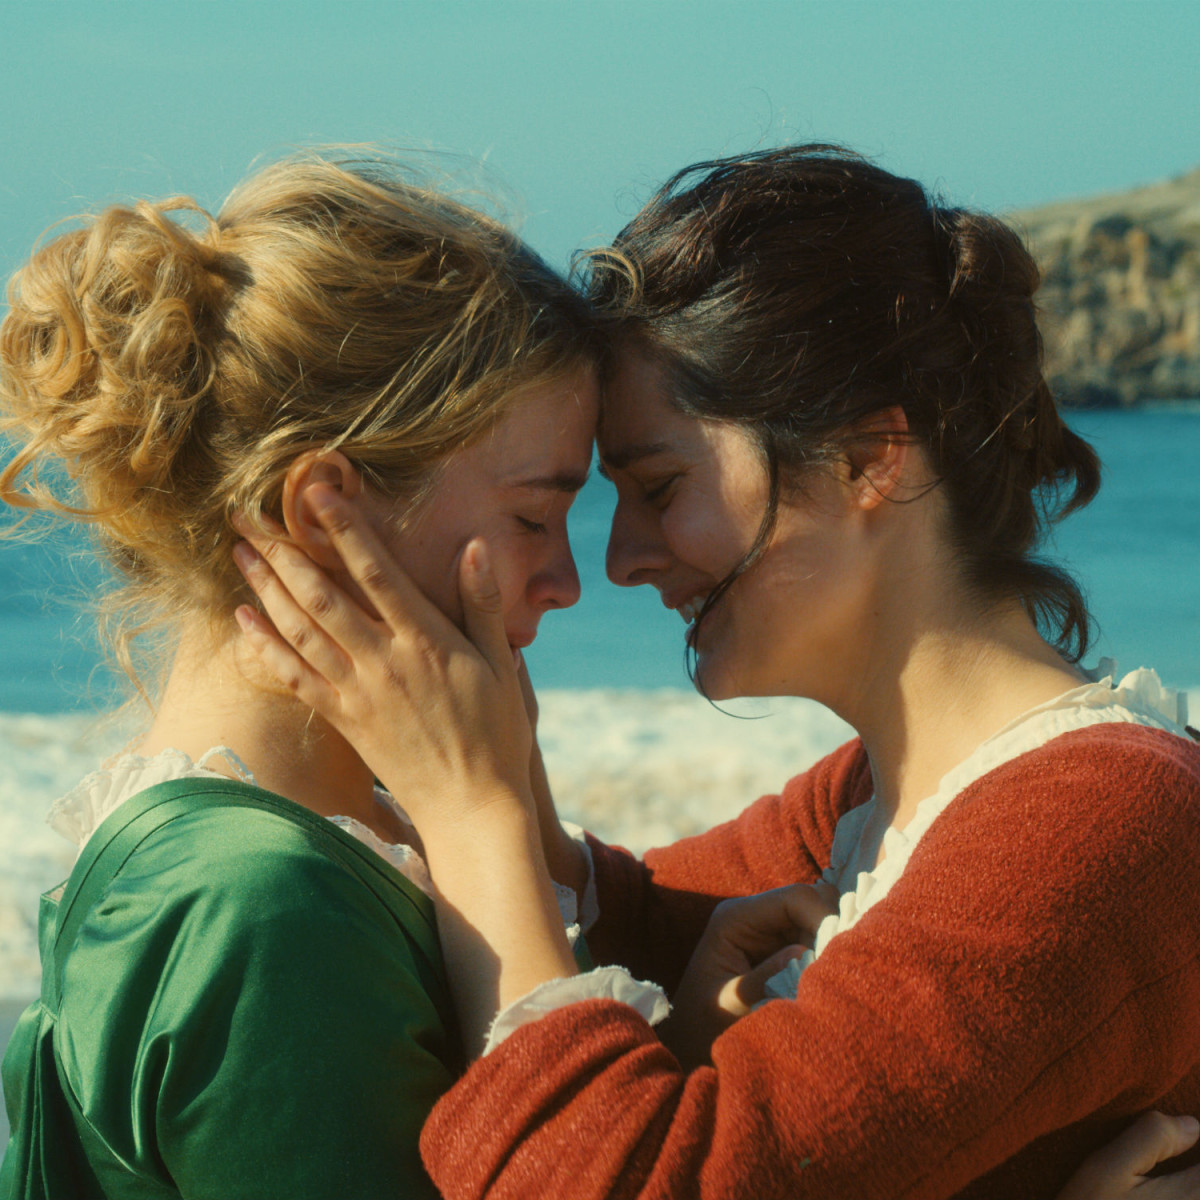 Adèle Haenel and Noémie Merlant in Portrait of a Lady on Fire